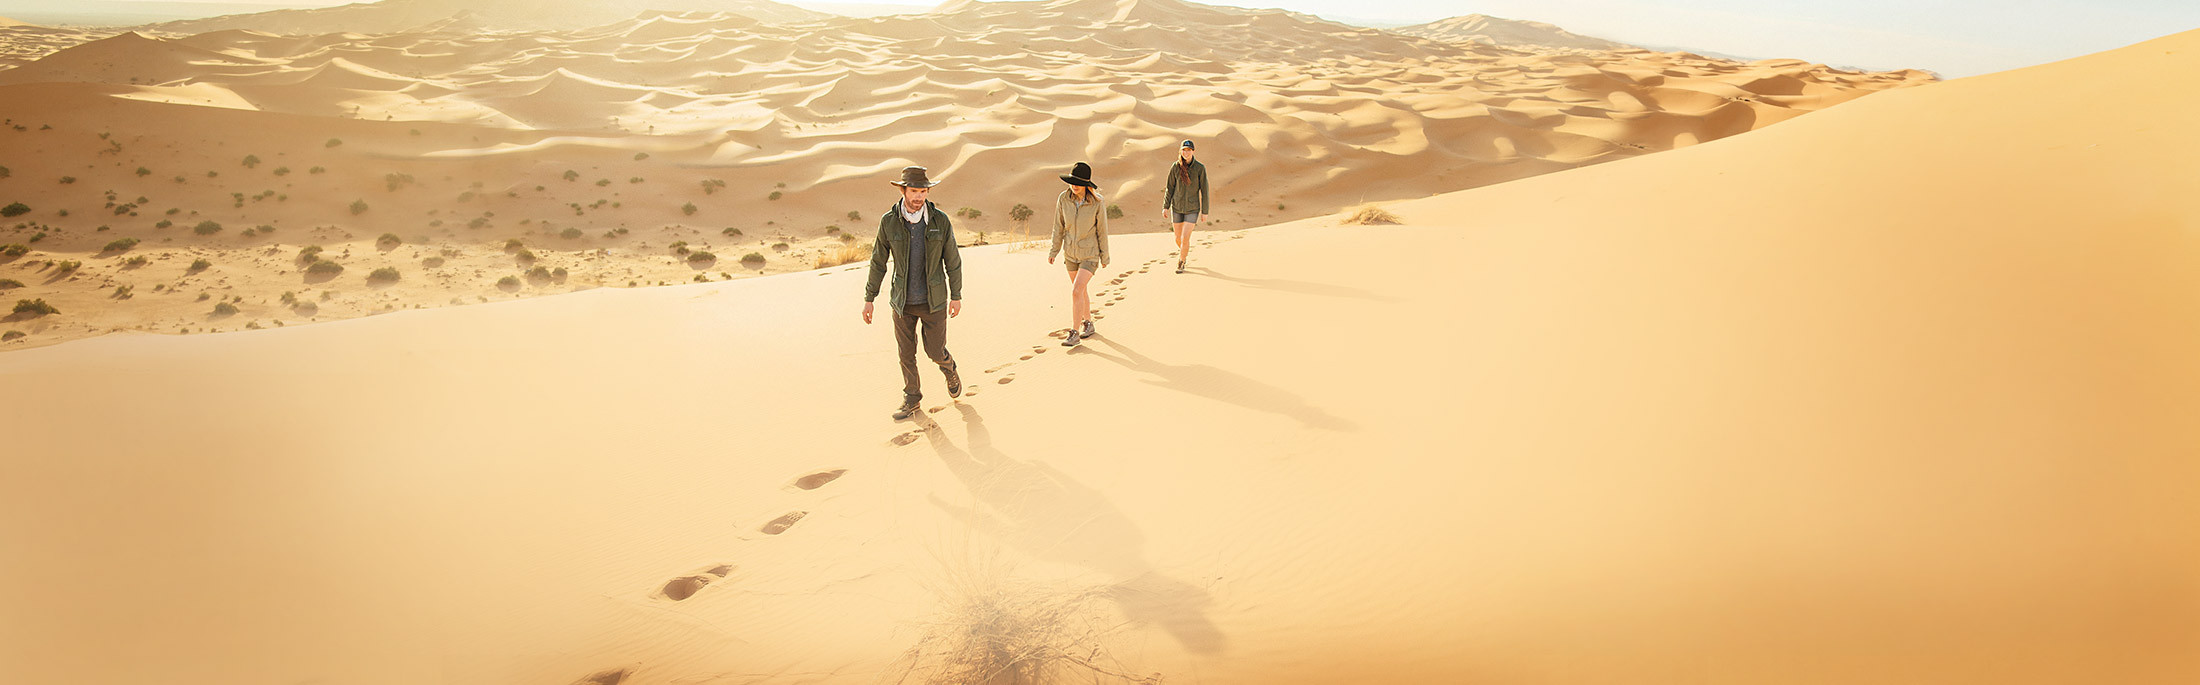 Three travelers walking across sand dunes in Morocco